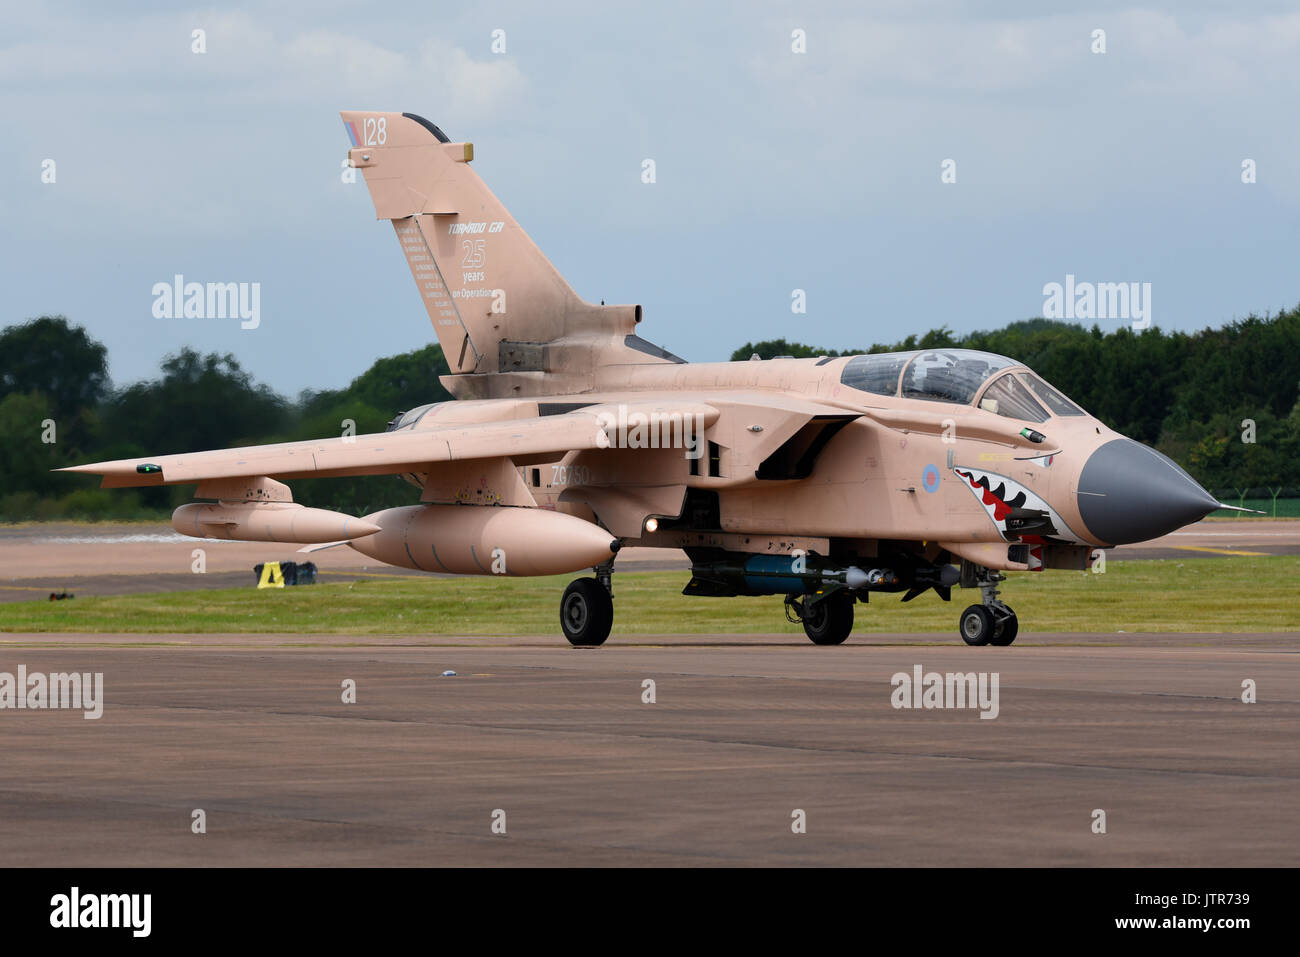 RAF Panavia Tornado GR4 in Gulf War desert pink special colour scheme commemorating 25 years operations in the area. Nicknamed Pinky. Space for copy - Stock Image